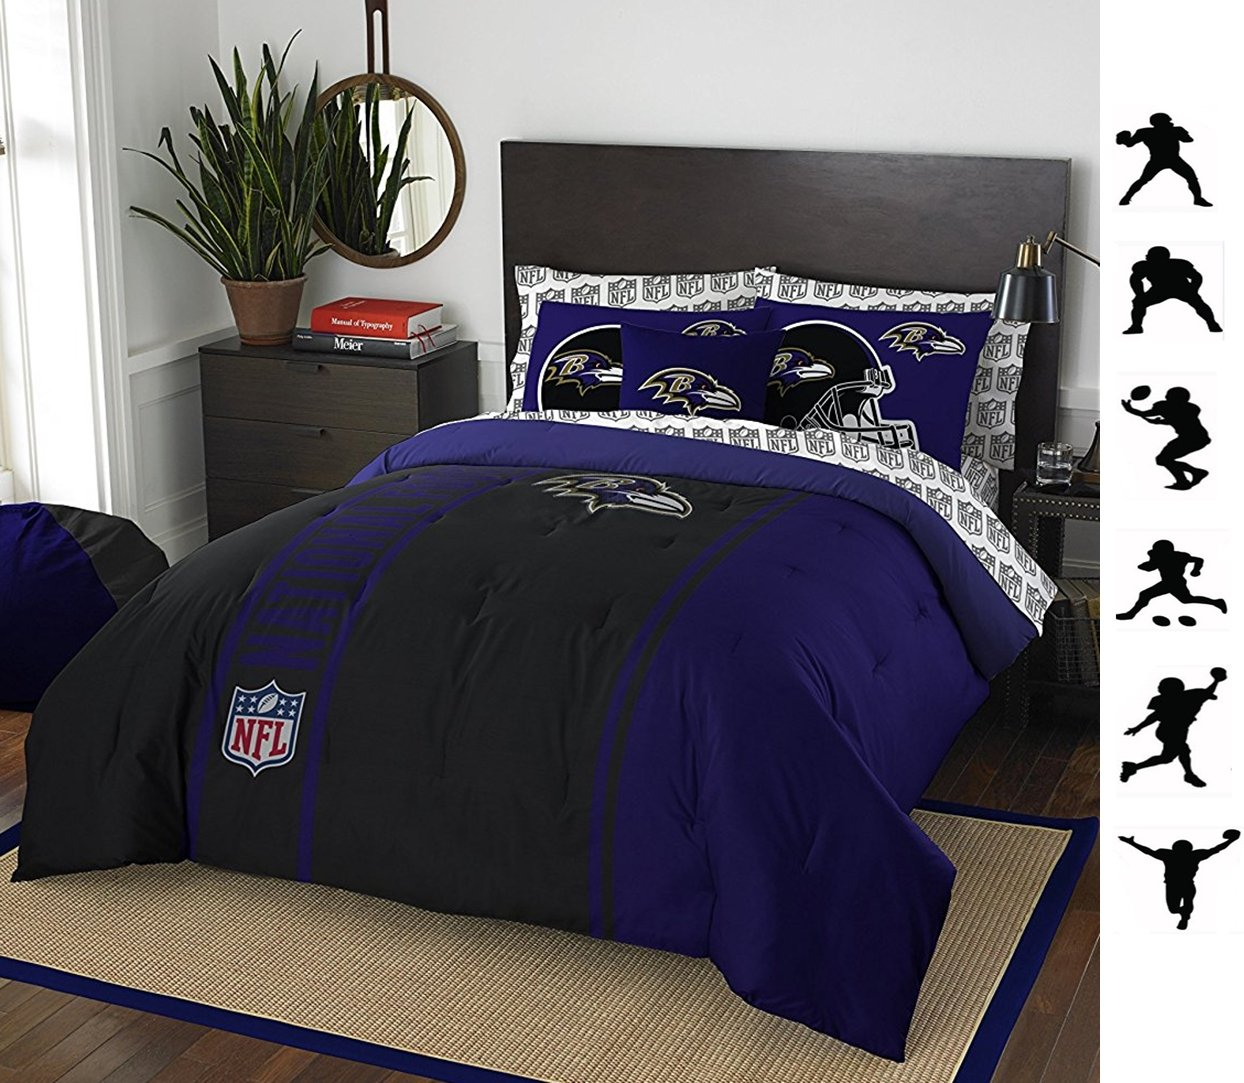 NFL BALTIMORE RAVENS 7pc Full Size Comforter, Pillow Shams & Sheet Set + WALL DECALS